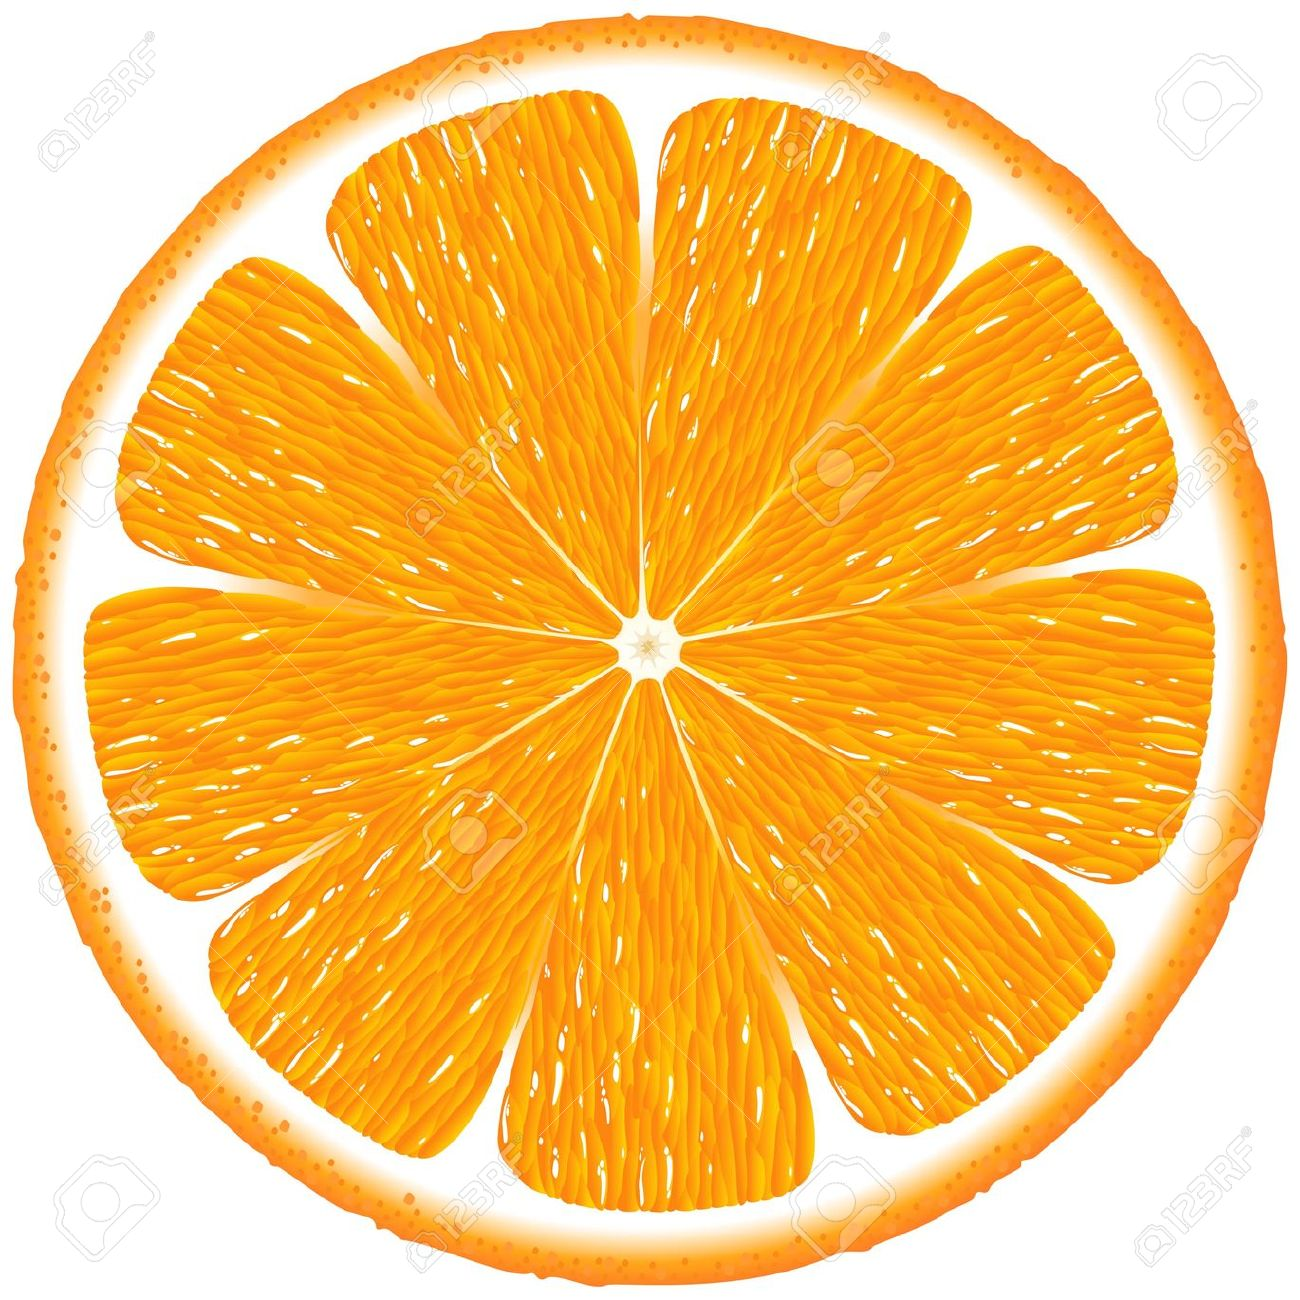 Orange Background Royalty Free Cliparts, Vectors, And Stock.